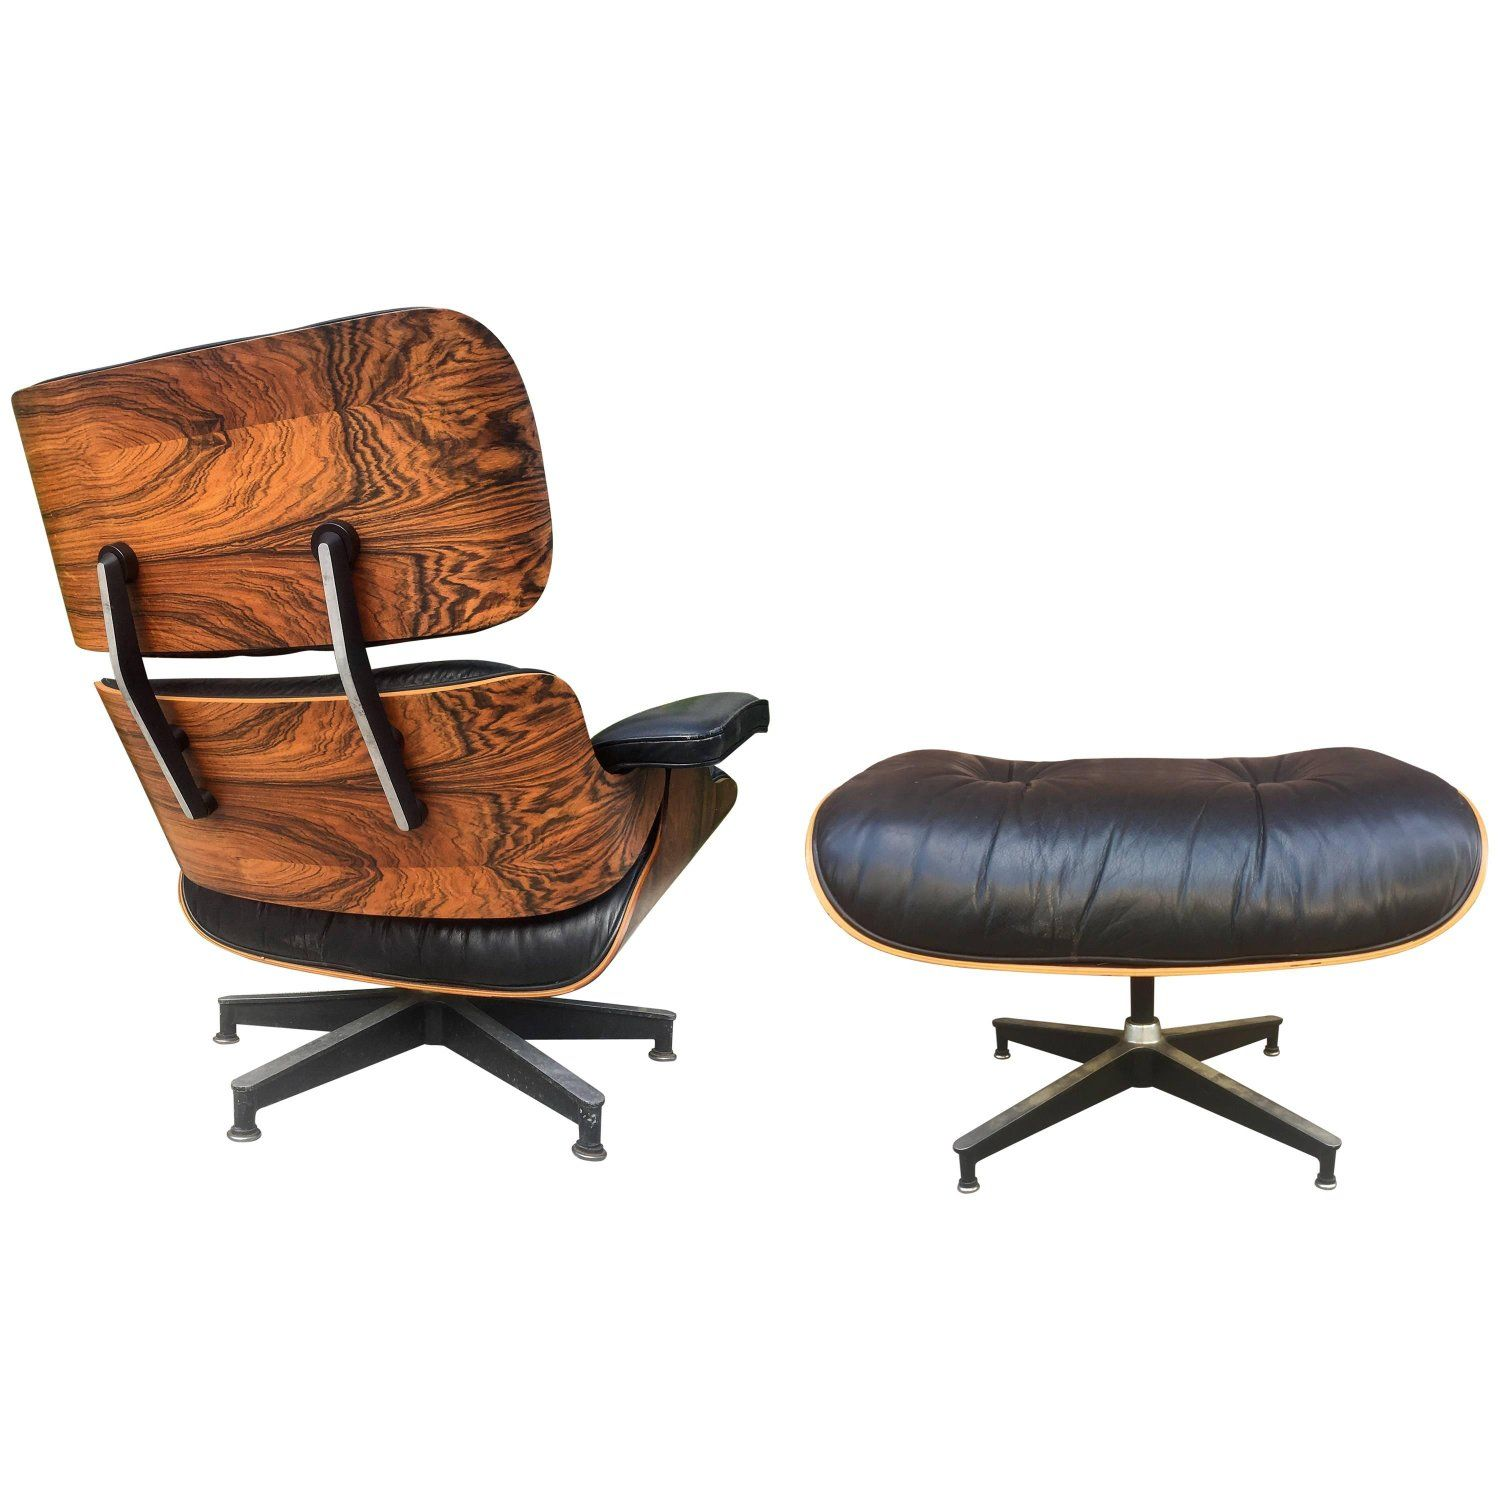 Spectacular Herman Miller Eames Lounge Chair And Ottoman Lounge Chair Herman Miller Eames Lounge Eames